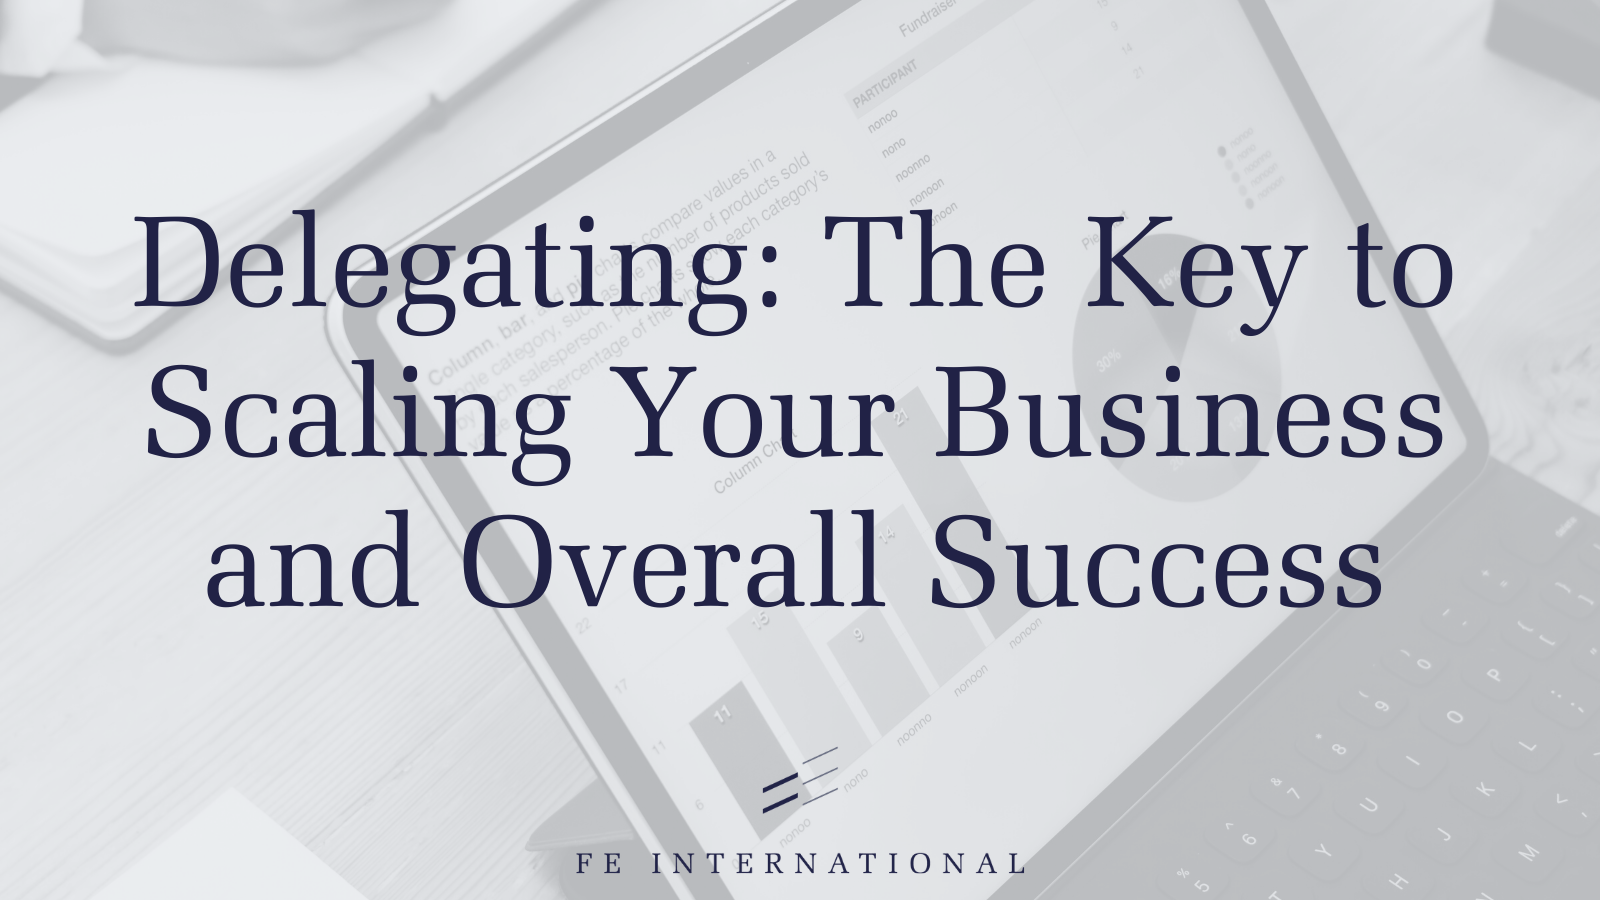 Delegating: The Key to Scaling Your Business and Overall Success